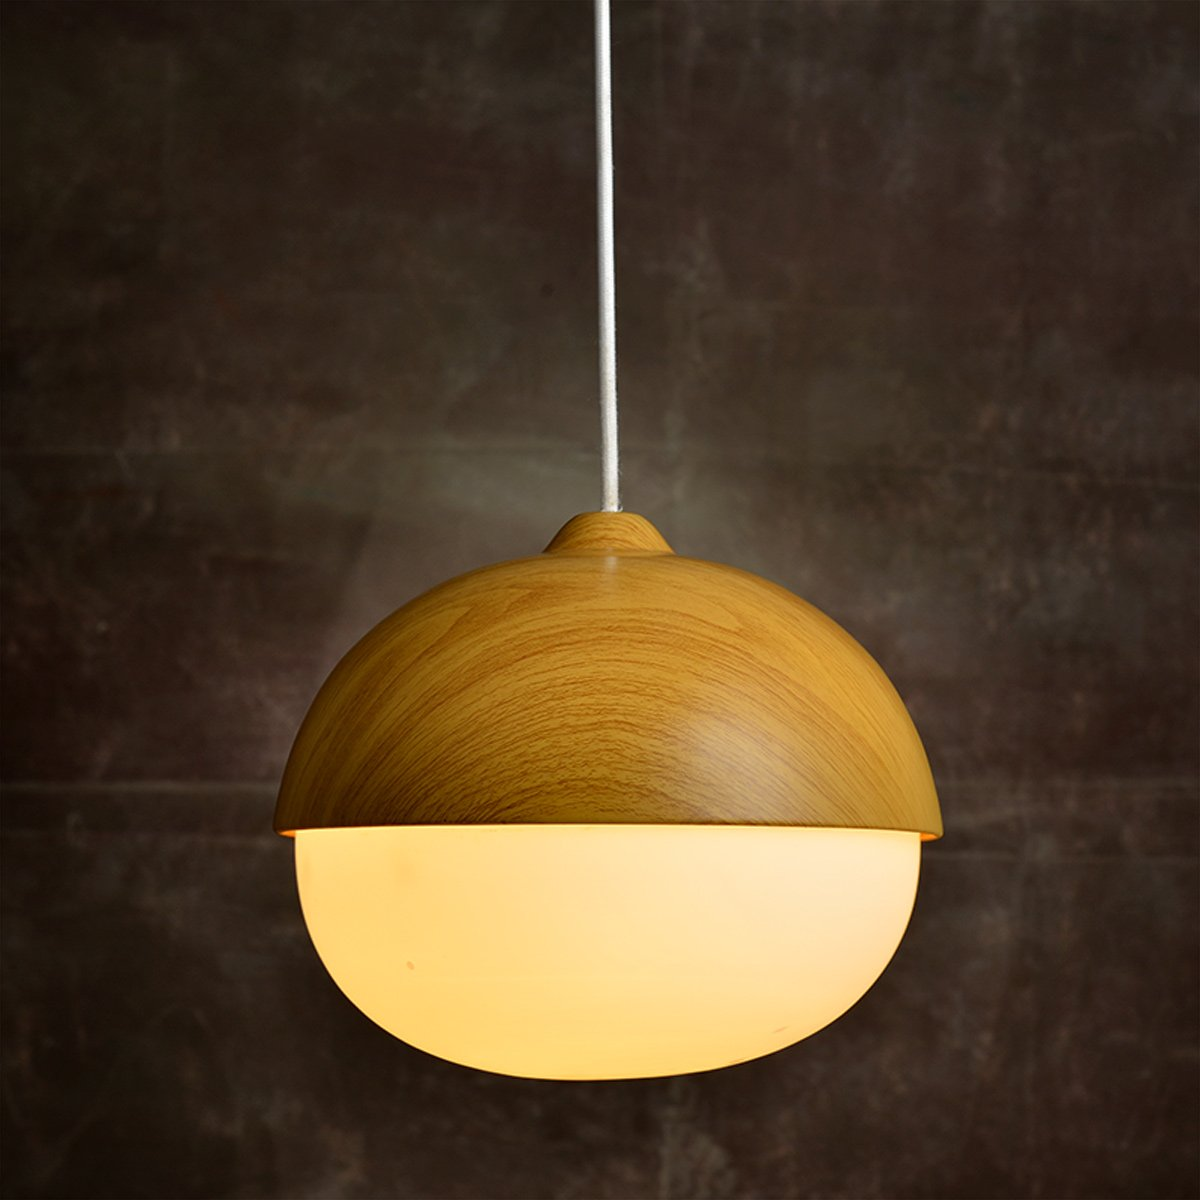 MASO Home, The Modern Elegance Style of Pendant Hanging Lamps, Natural Wood Color Based with Glass Shade Pendant Ceiling Light, Retro Industrial Lamp Vintage Unique Design (Chestnut Shape) by Maso Home (Image #1)